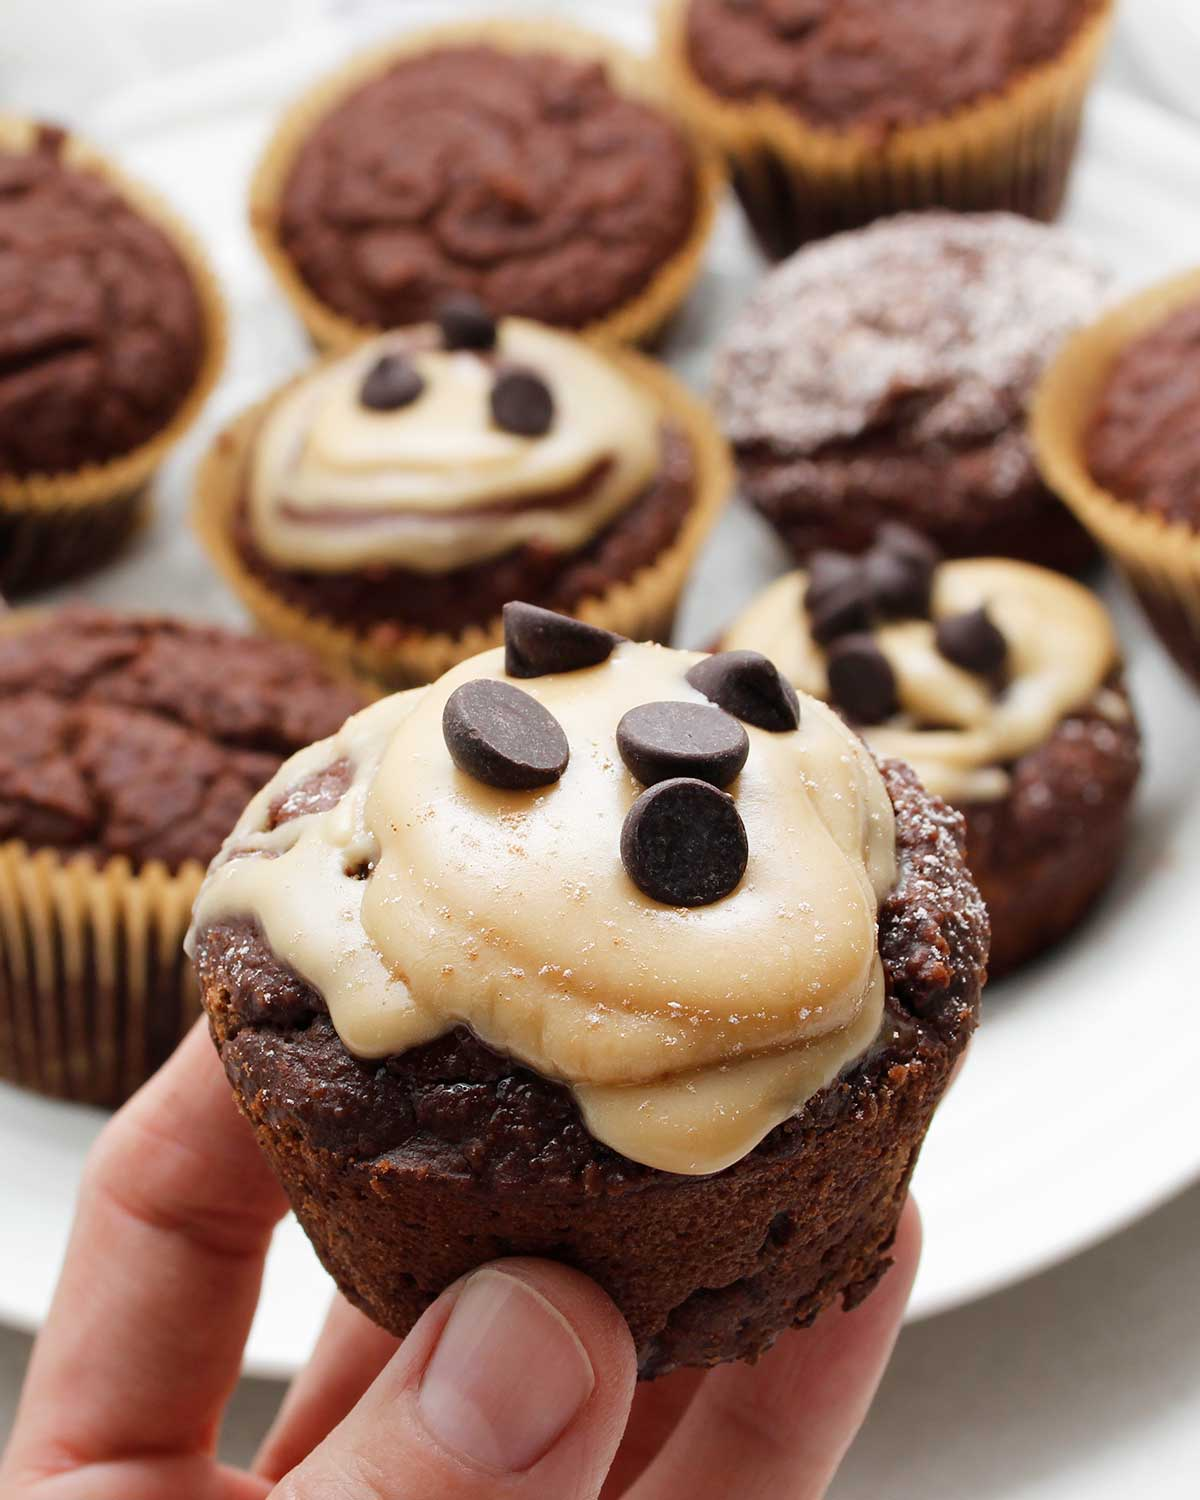 Cupcake decorated with maple cream and dark chocolate chips.